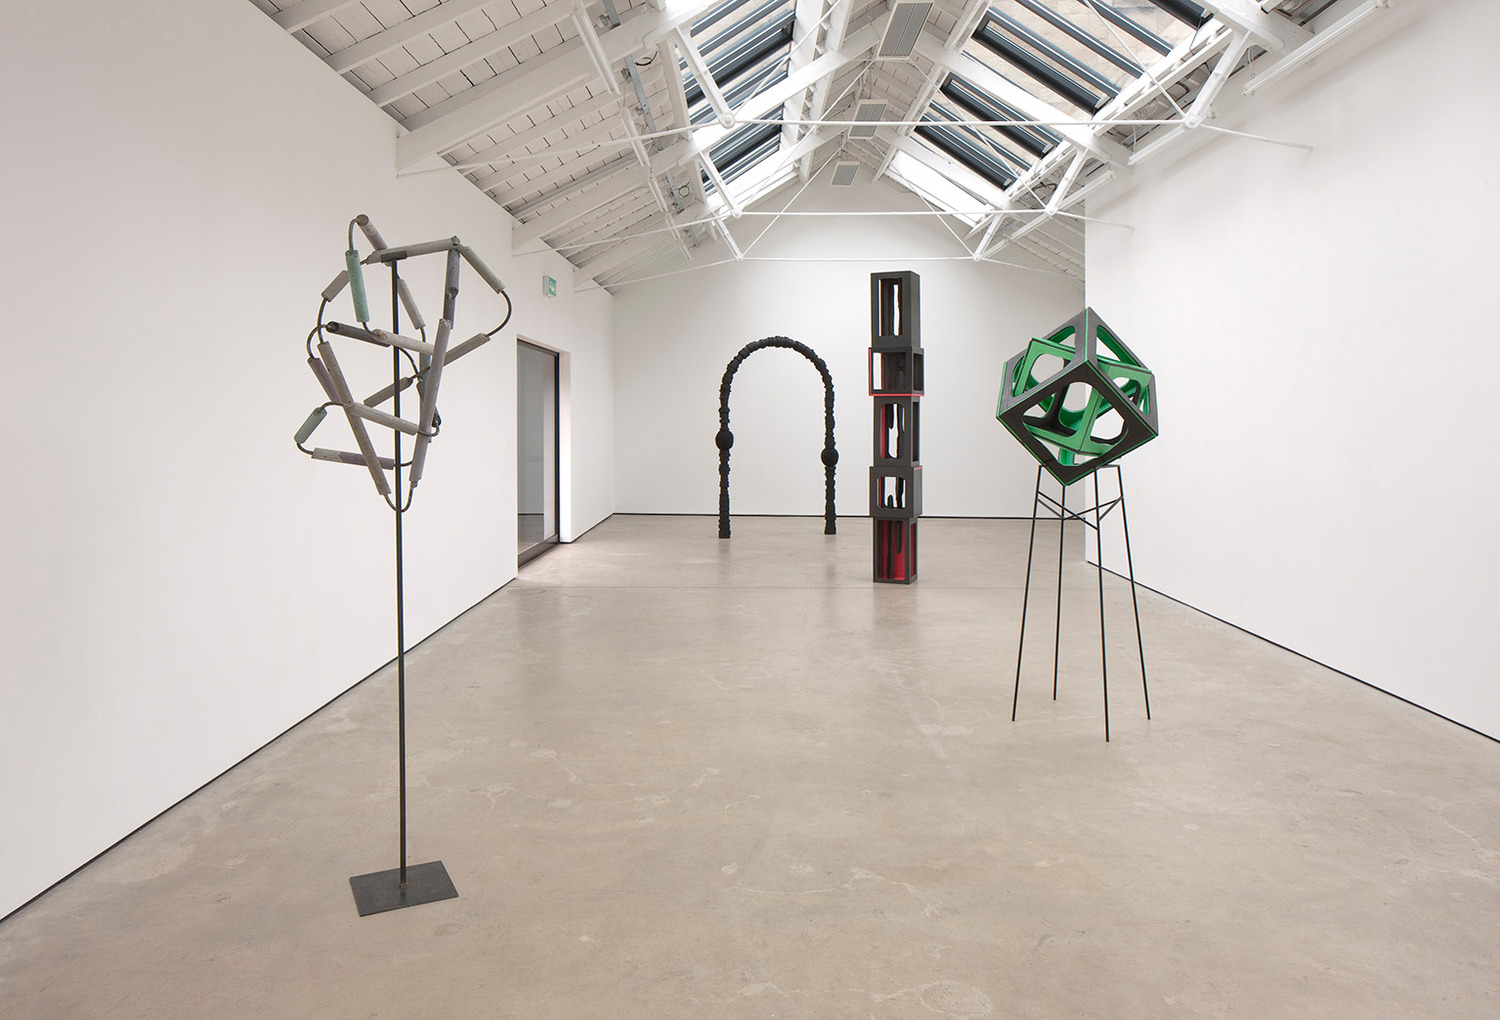 Installation view, The Modern Institute, Osborne Street, Glasgow, 2012